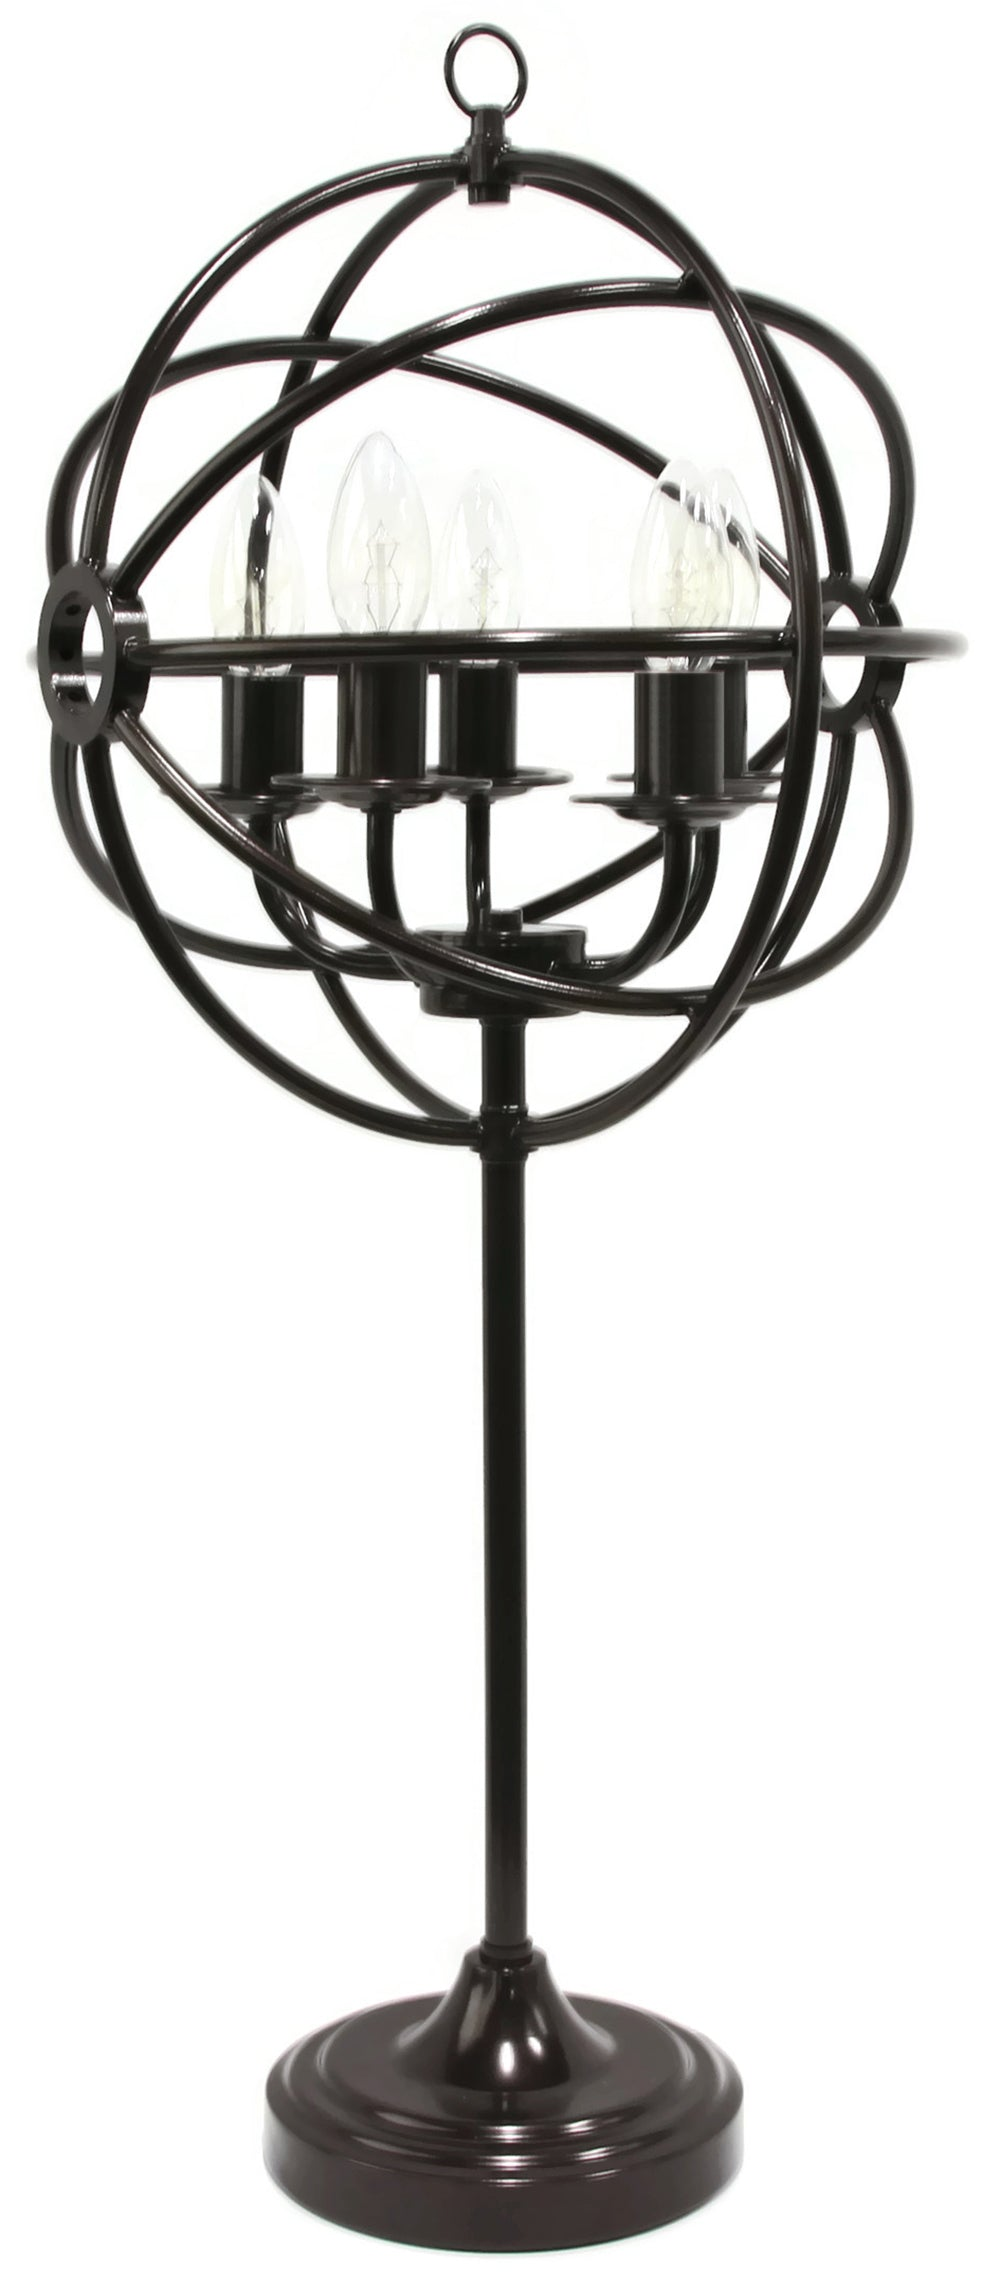 Bridgeport Industrial Style Metal 5-Light Table Lamp, 30 1/2-inch Tall